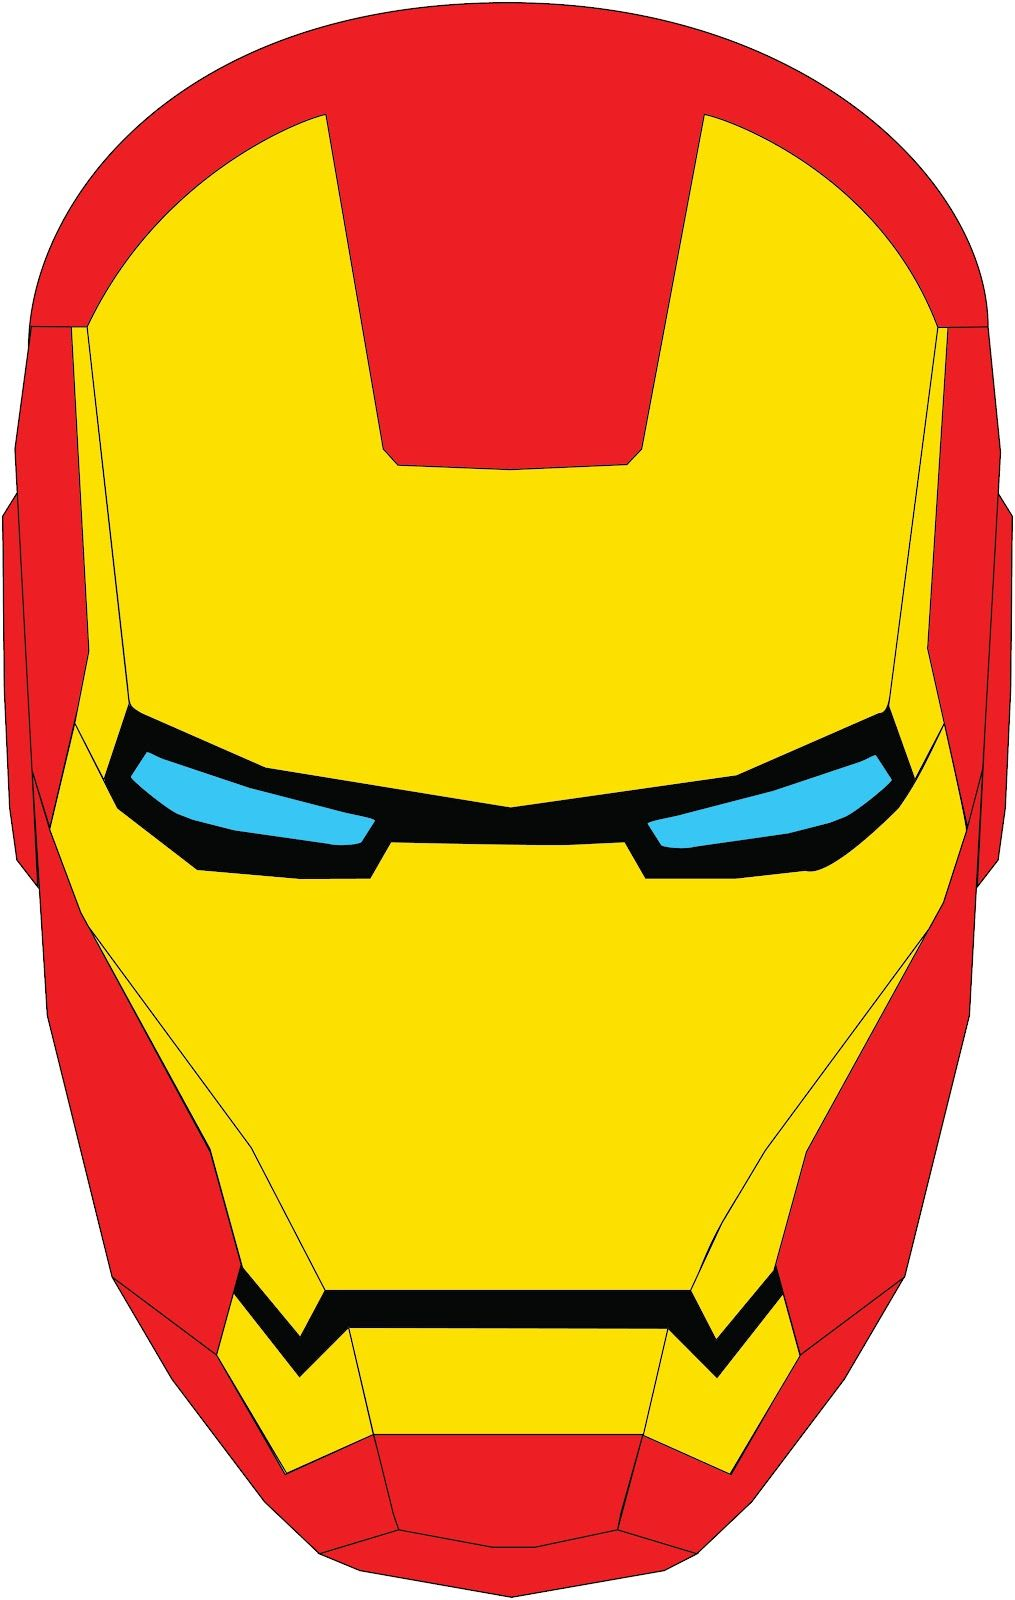 Iron man helmet clipart jpg transparent stock Superhero Dresser Commission | Cakes | Iron man face, Iron man ... jpg transparent stock